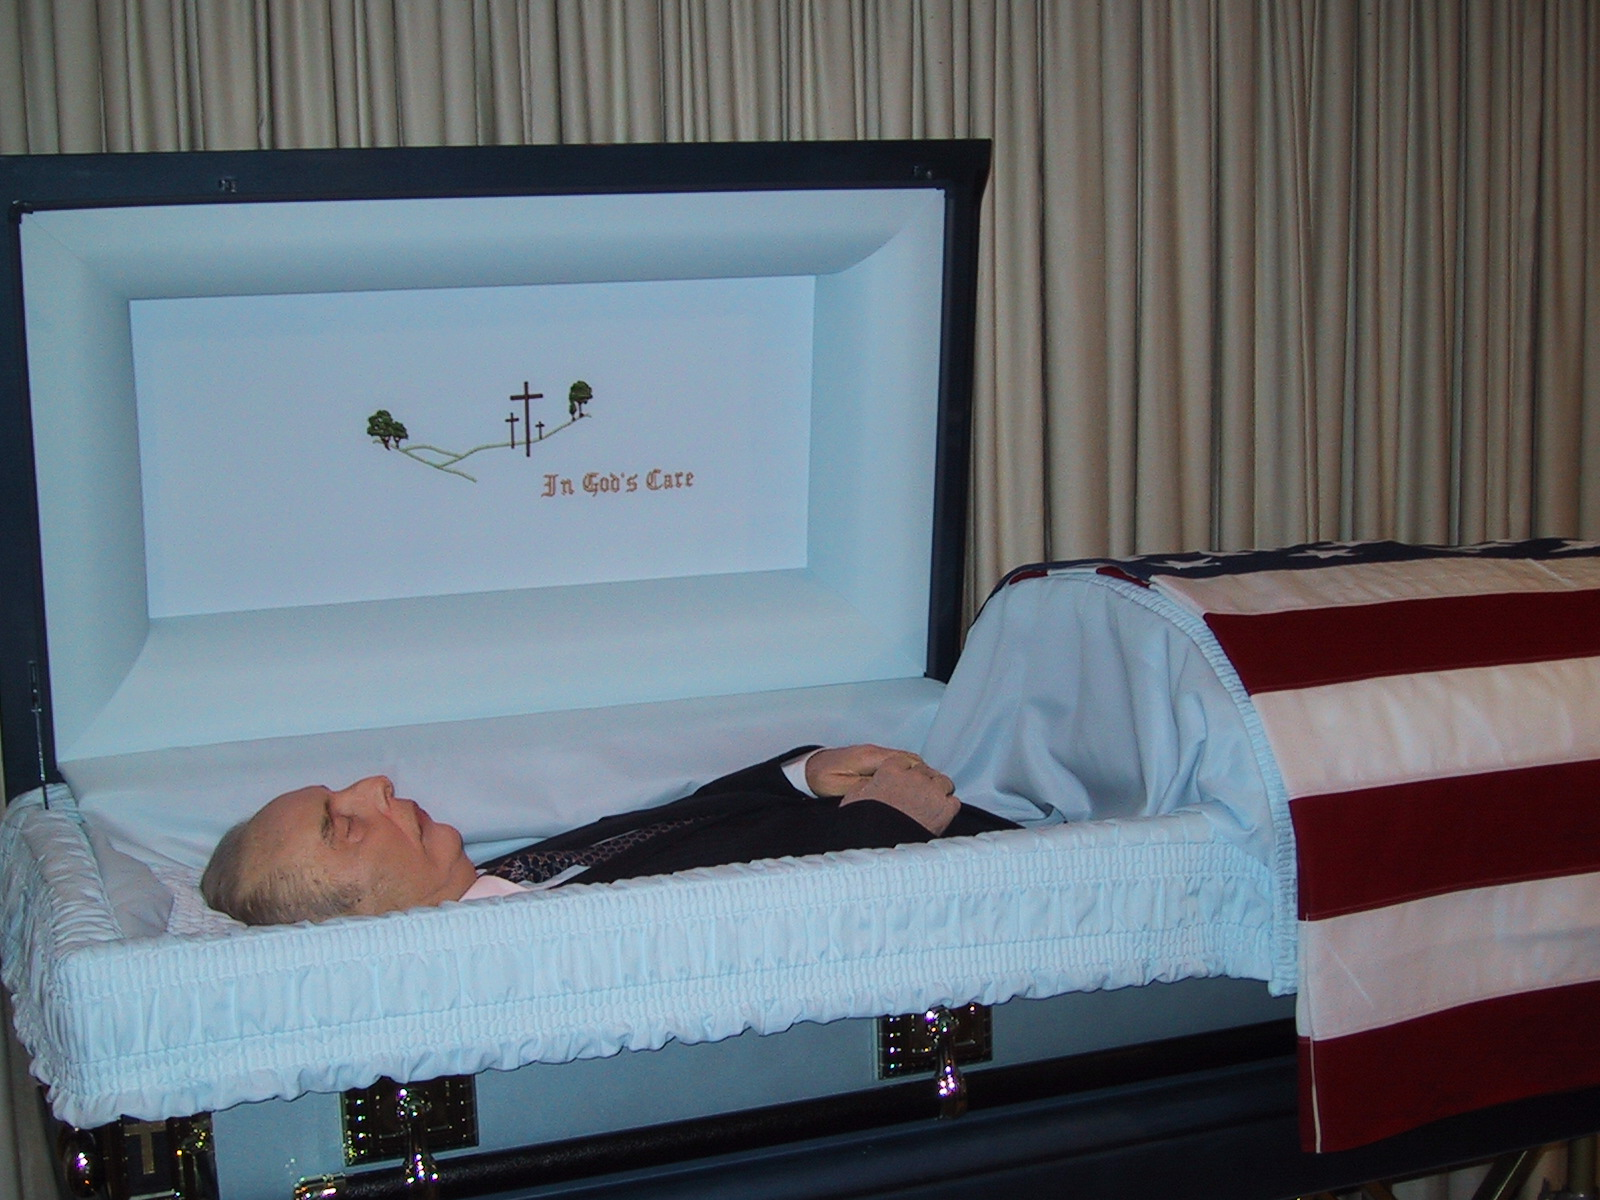 dead bodies in caskets pictures to pin on pinterest